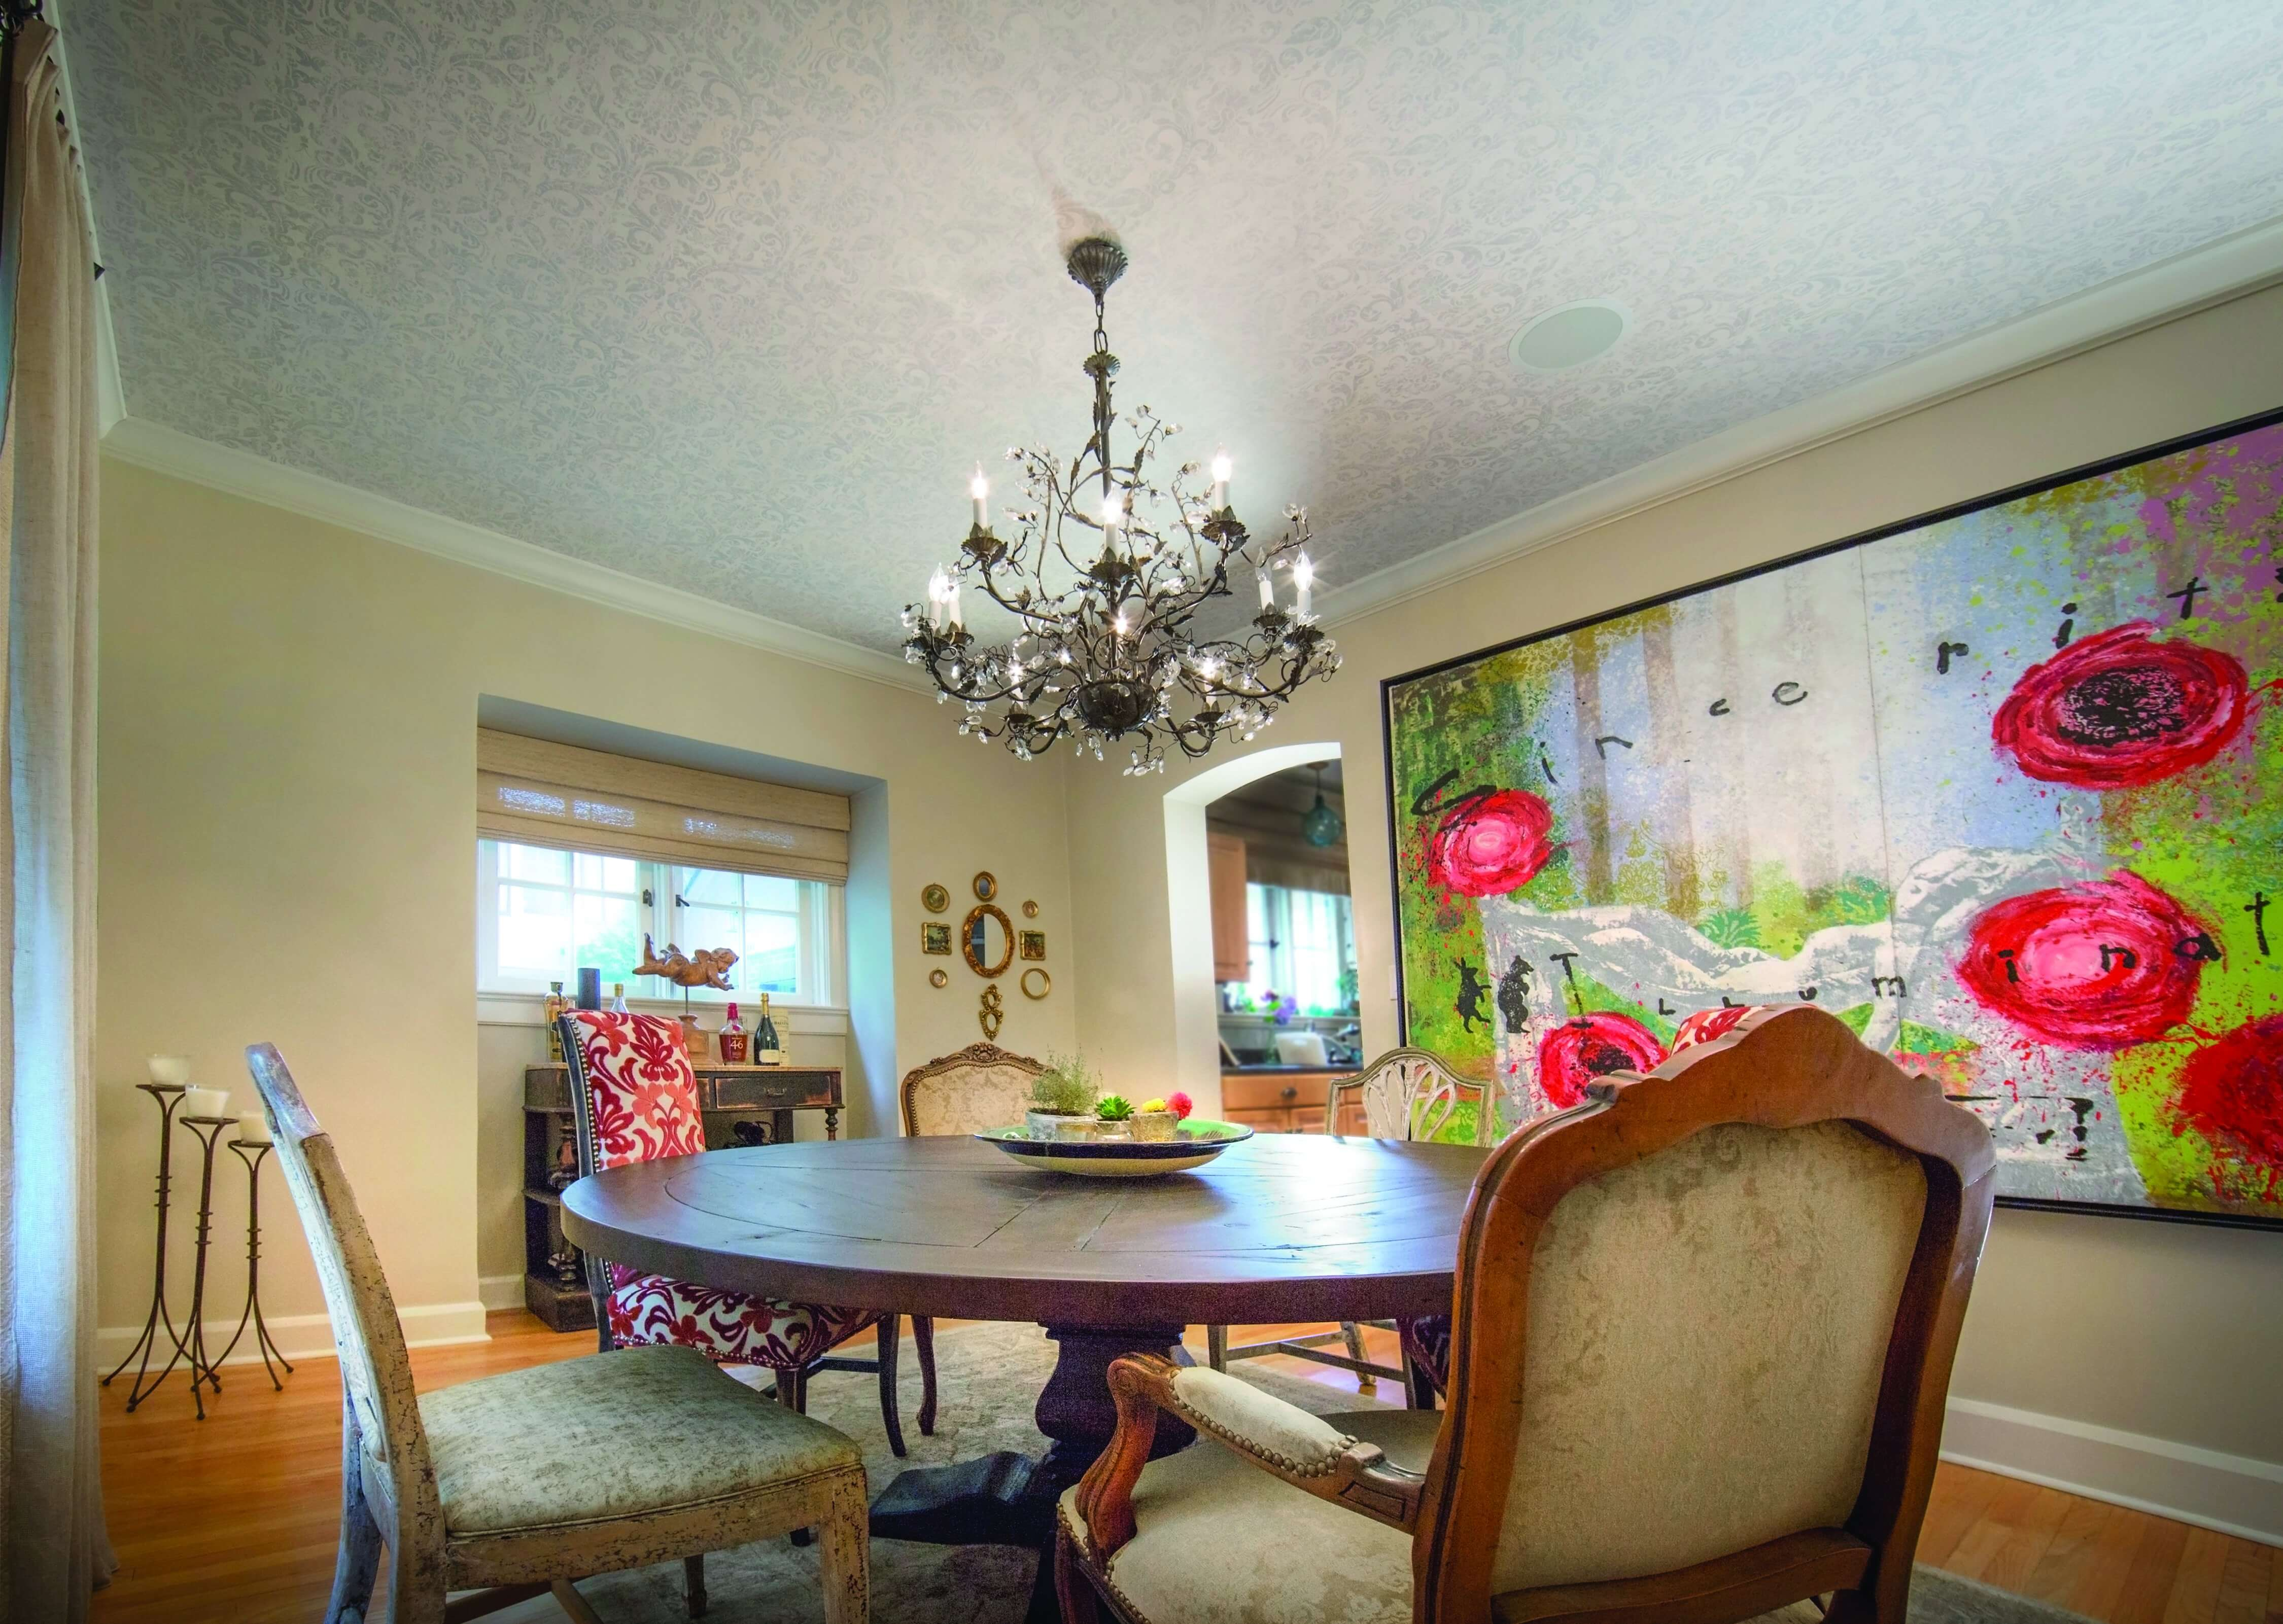 Out Of The Box Dining Room Wall Decor Ideas on Decor For Room  id=87105